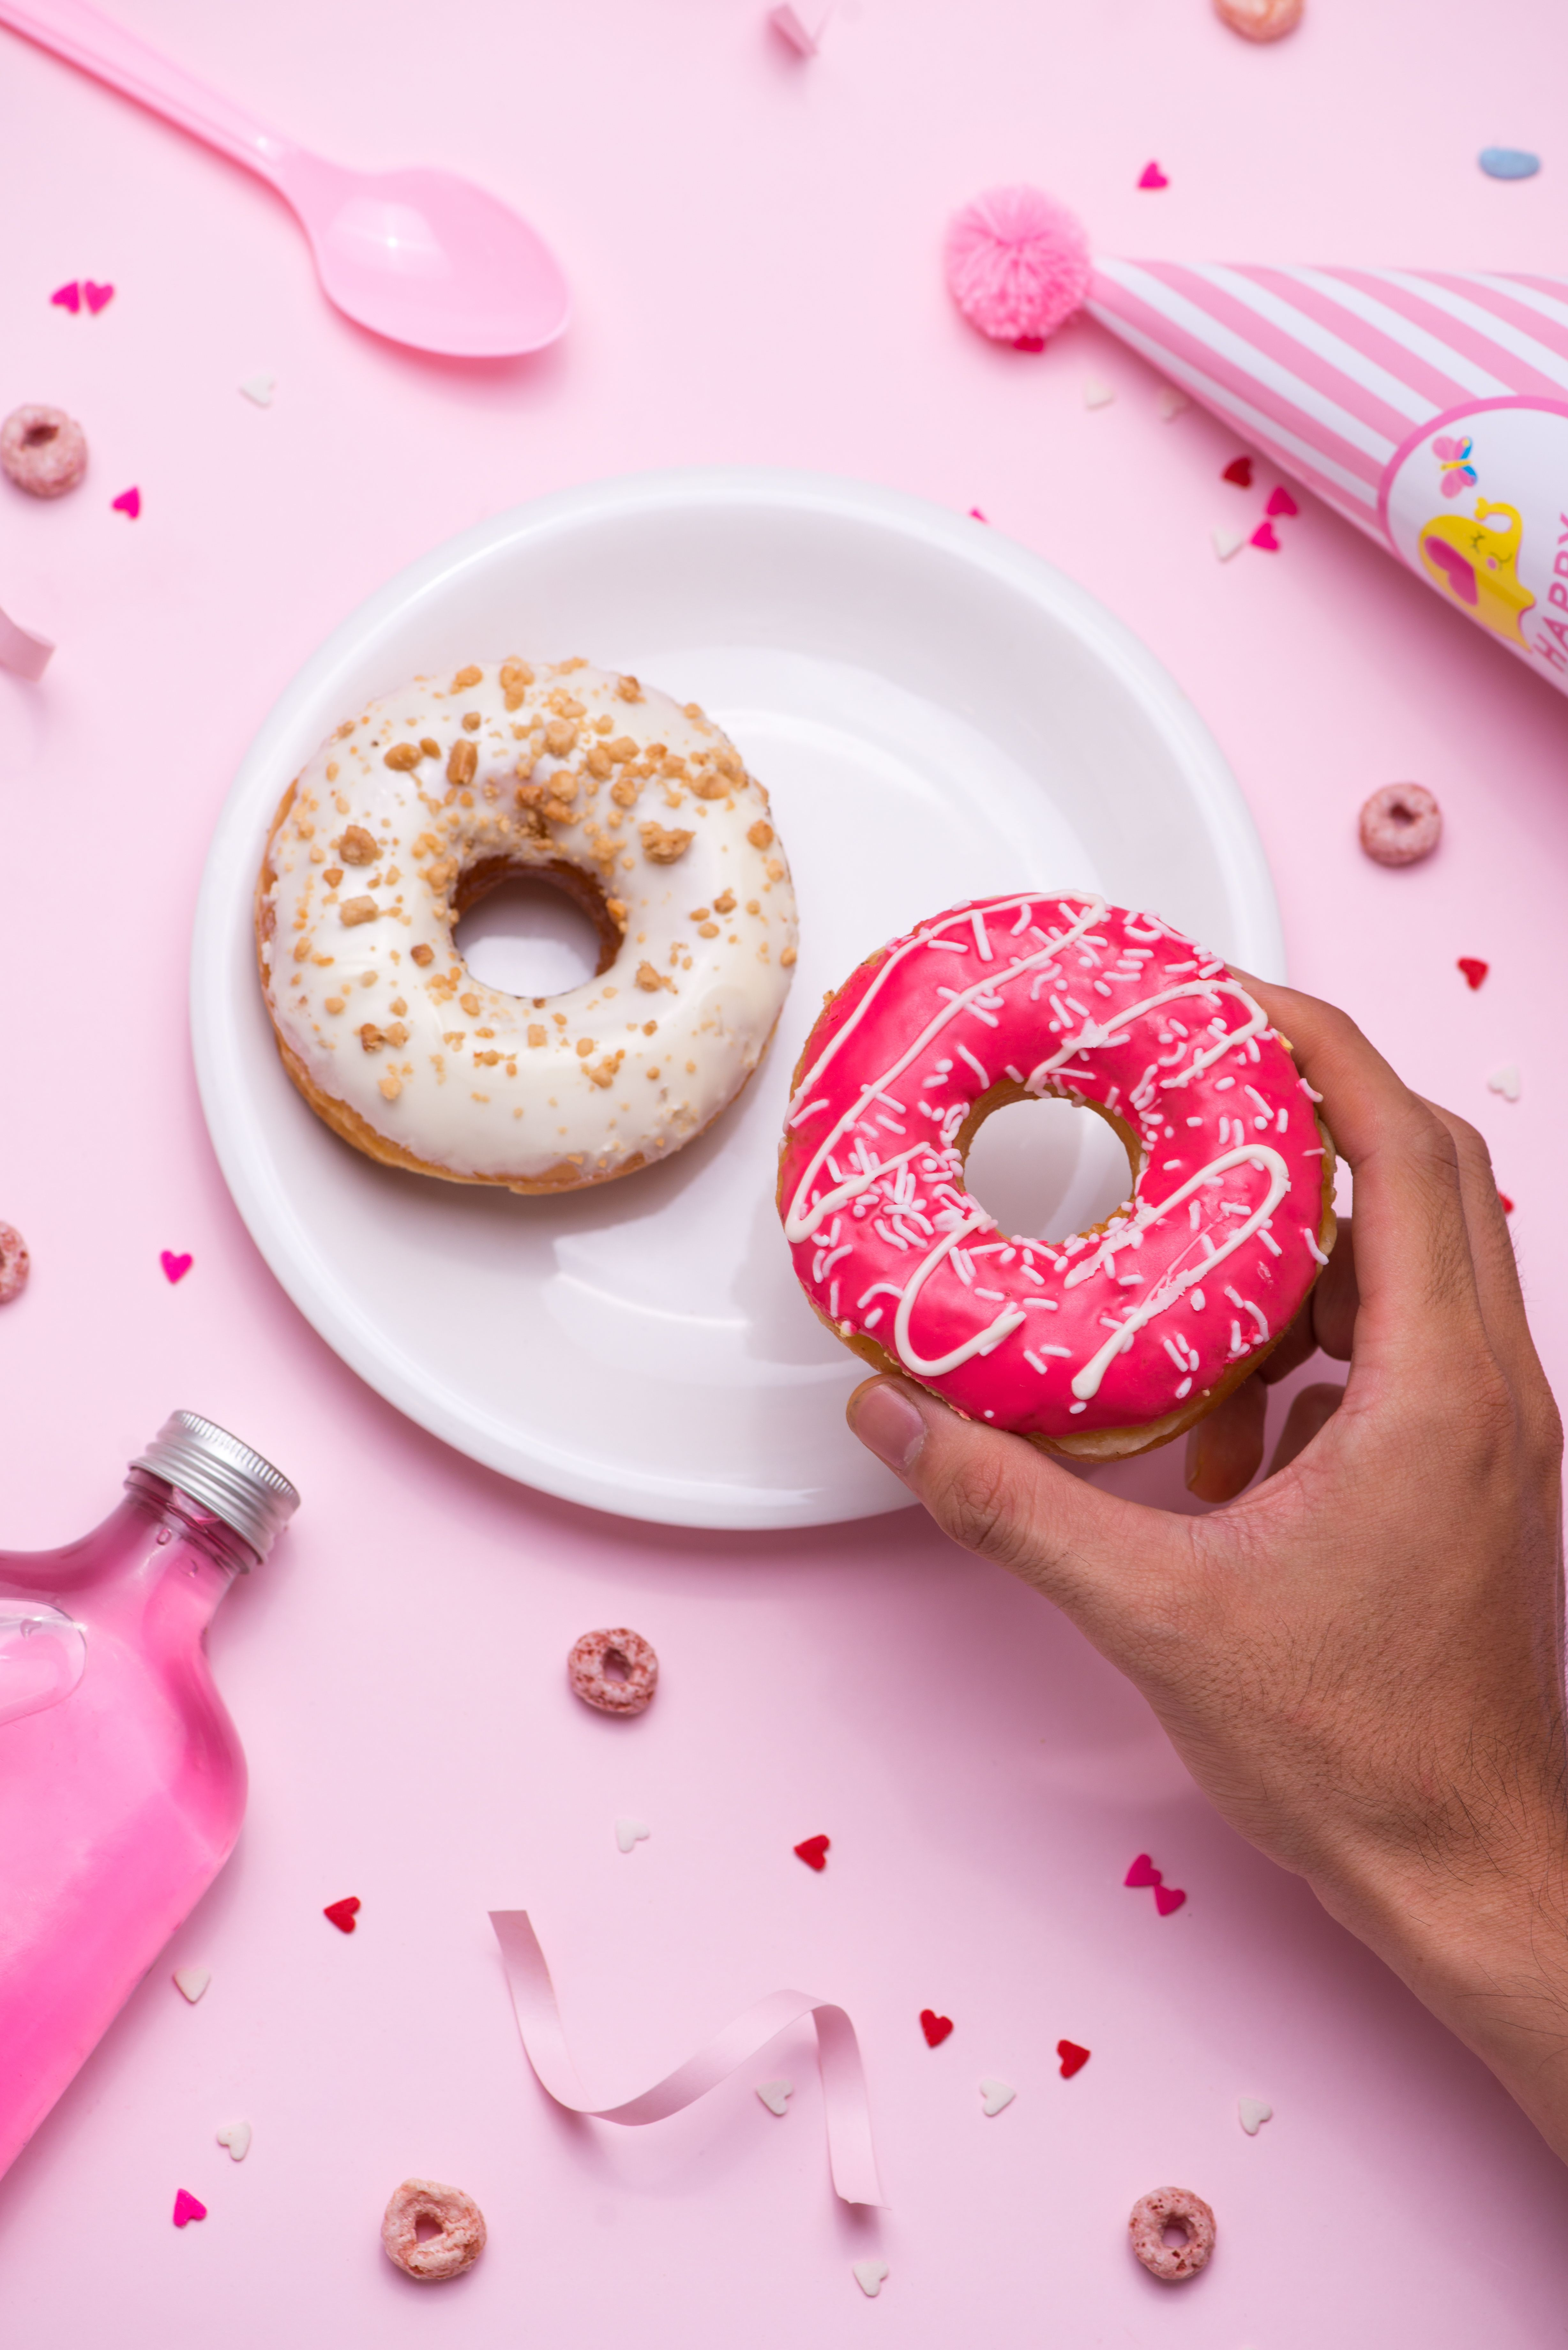 d18343101 Hands off! We love pink doughnuts far too much!